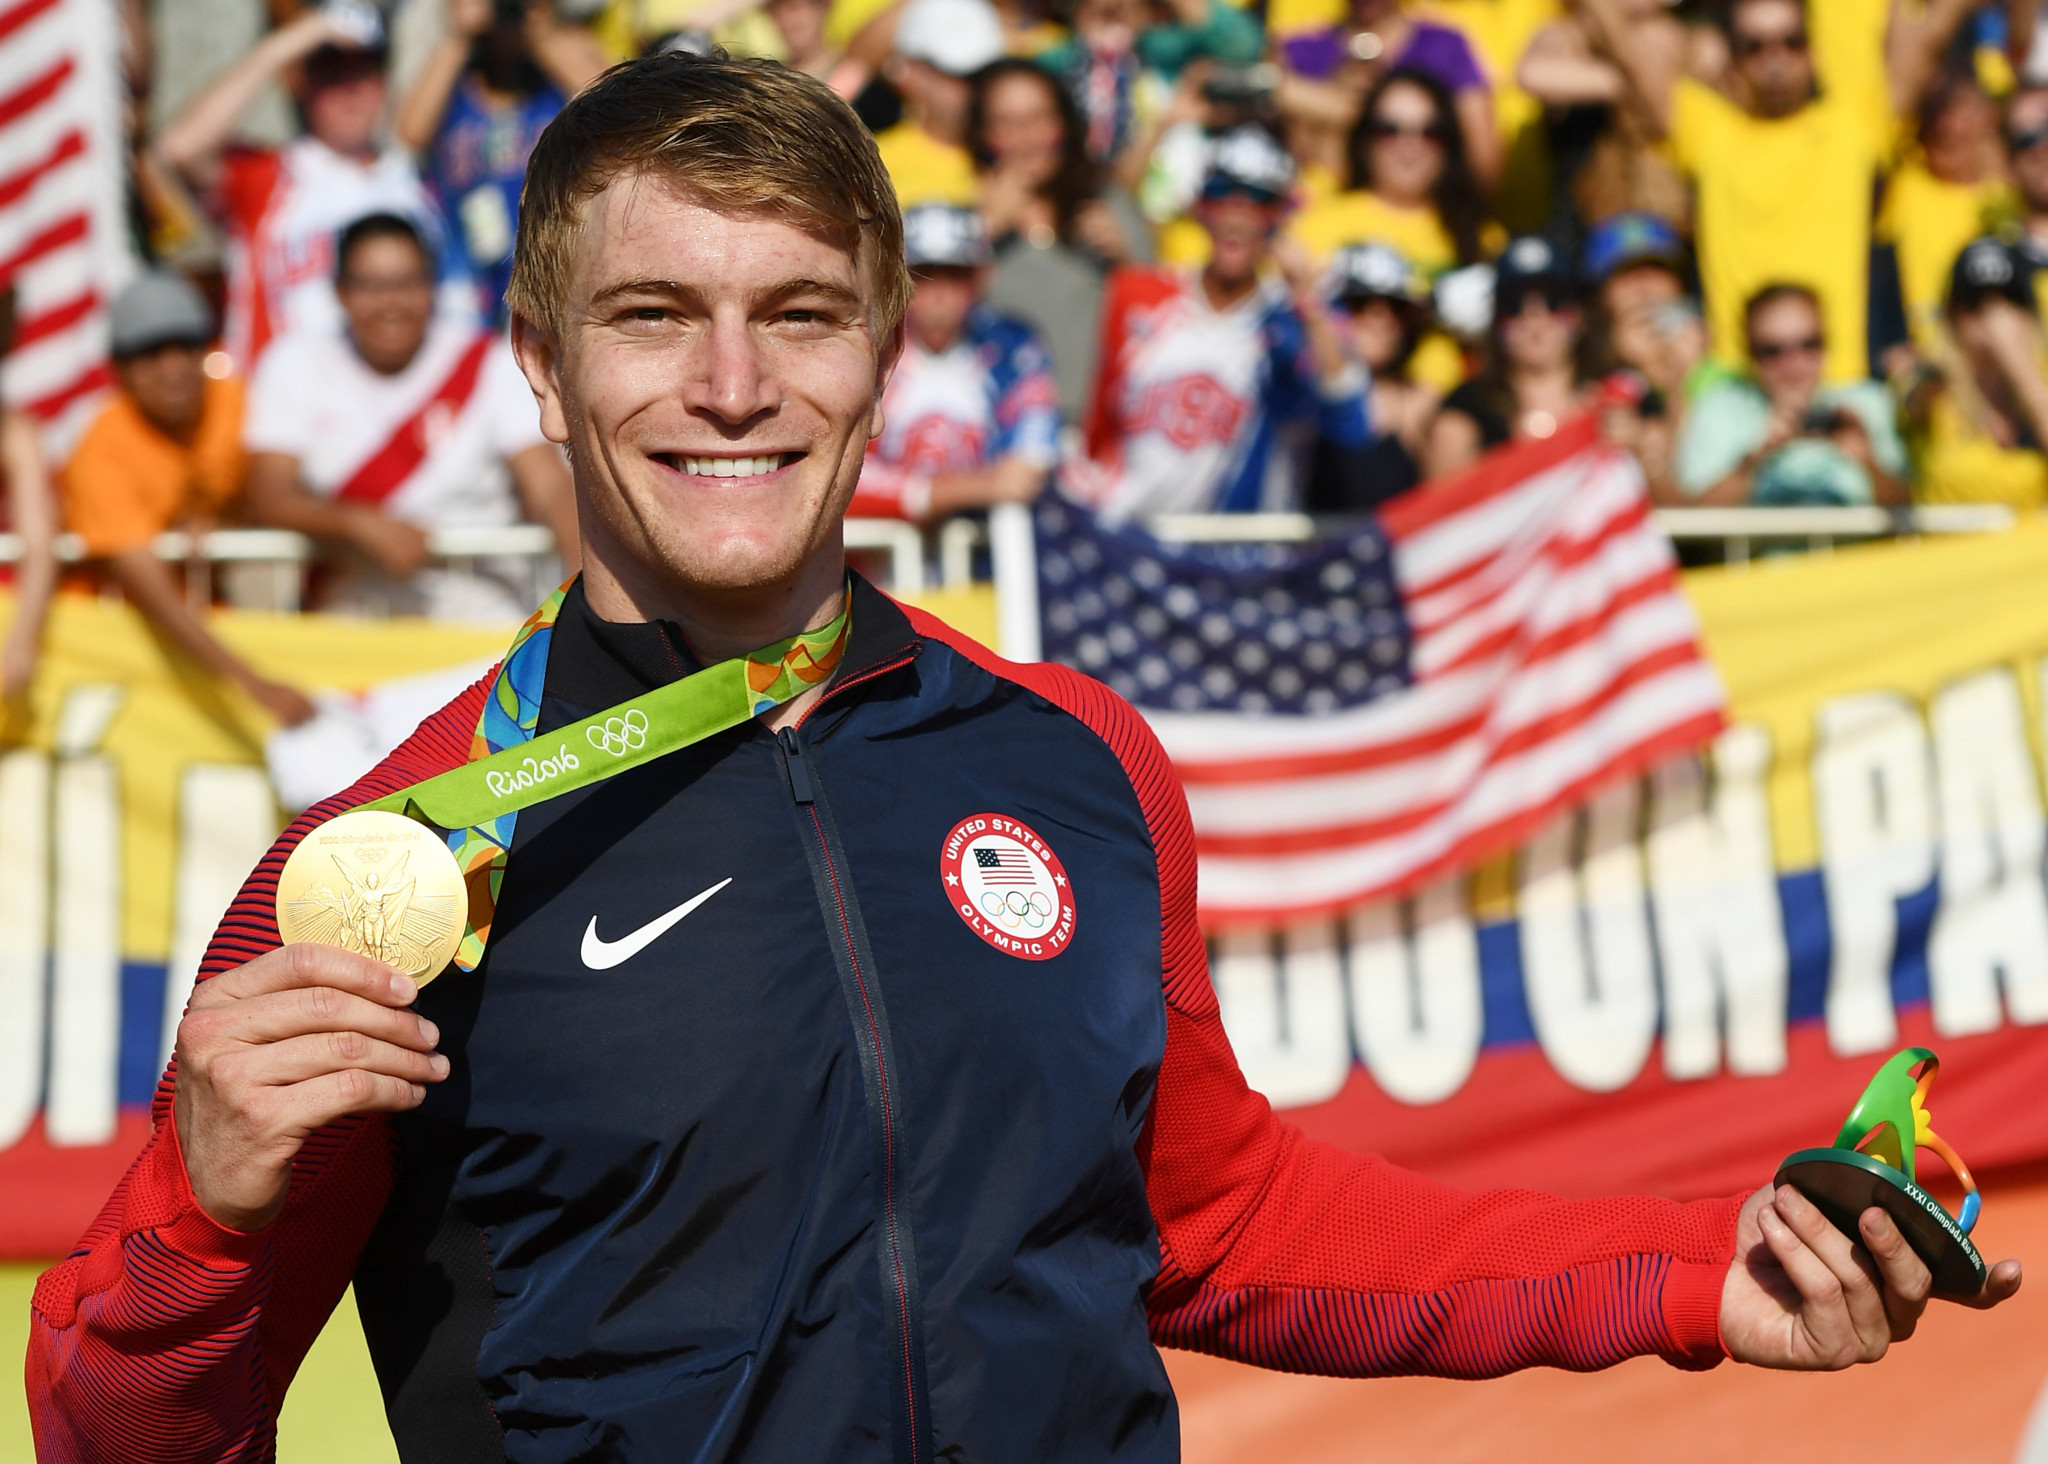 BMX Olympic champion Connor Fields is up for the Team USA male athlete of the month award ©Getty Images